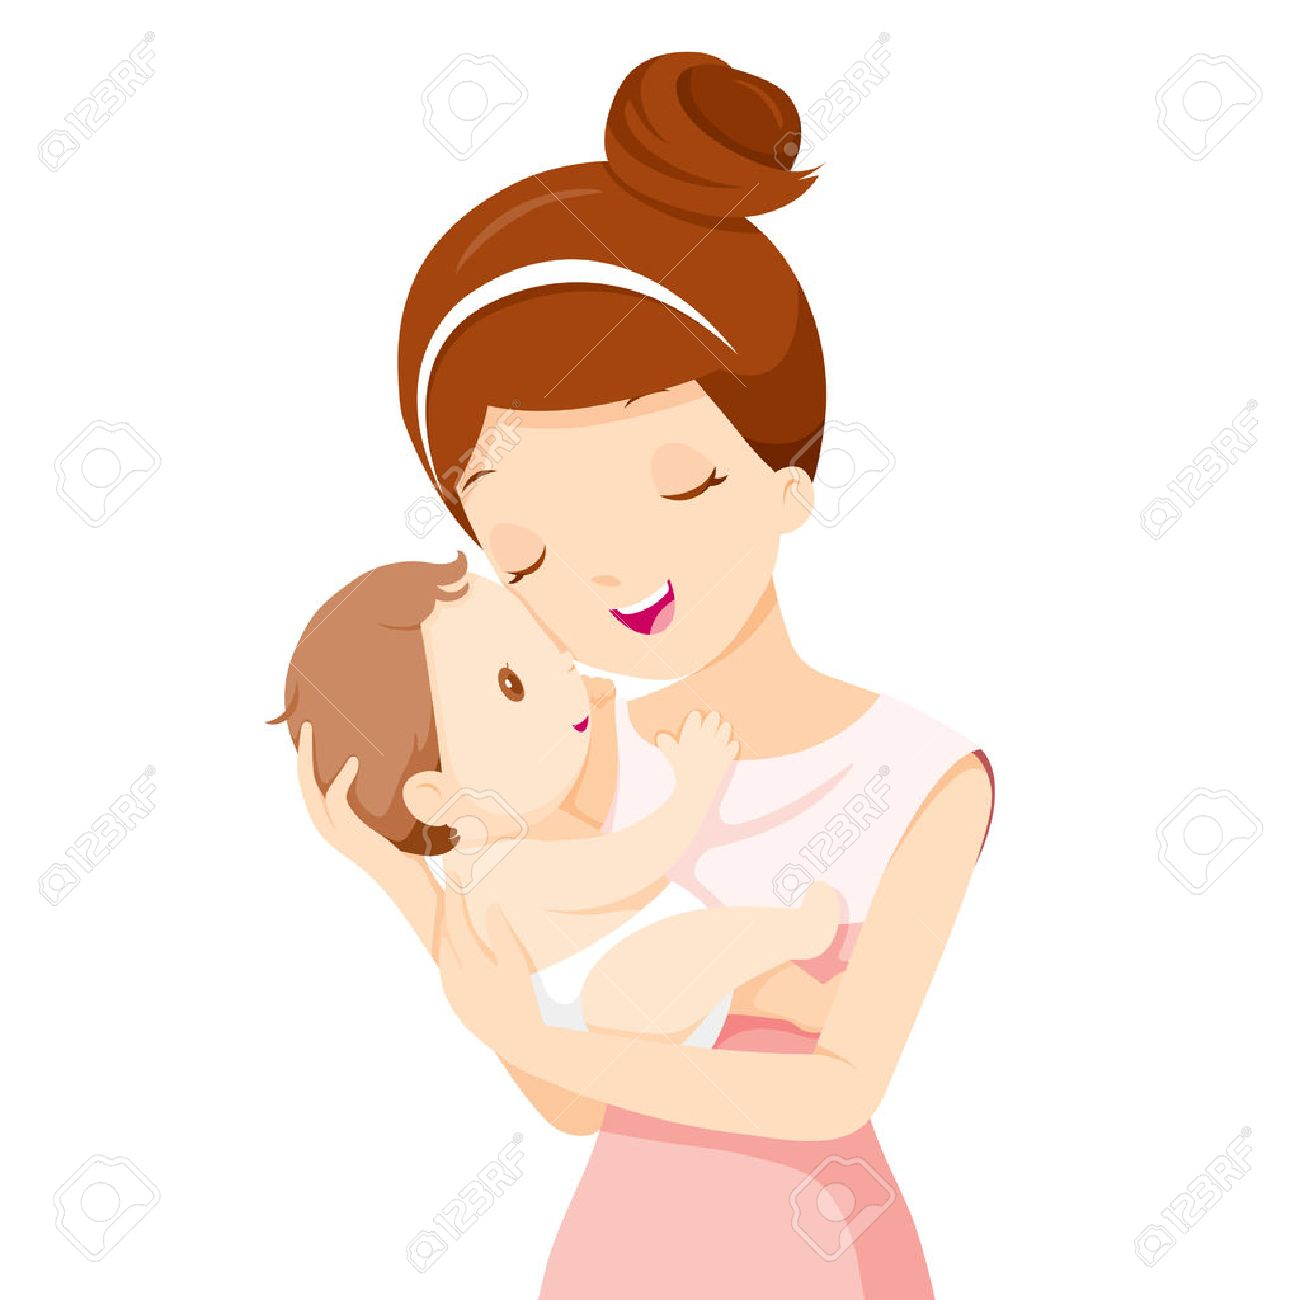 Baby In A Tender Embrace Of Mother, Mother's day, Mother, Baby, Infant, Motherhood, Love, Innocence - 55425128